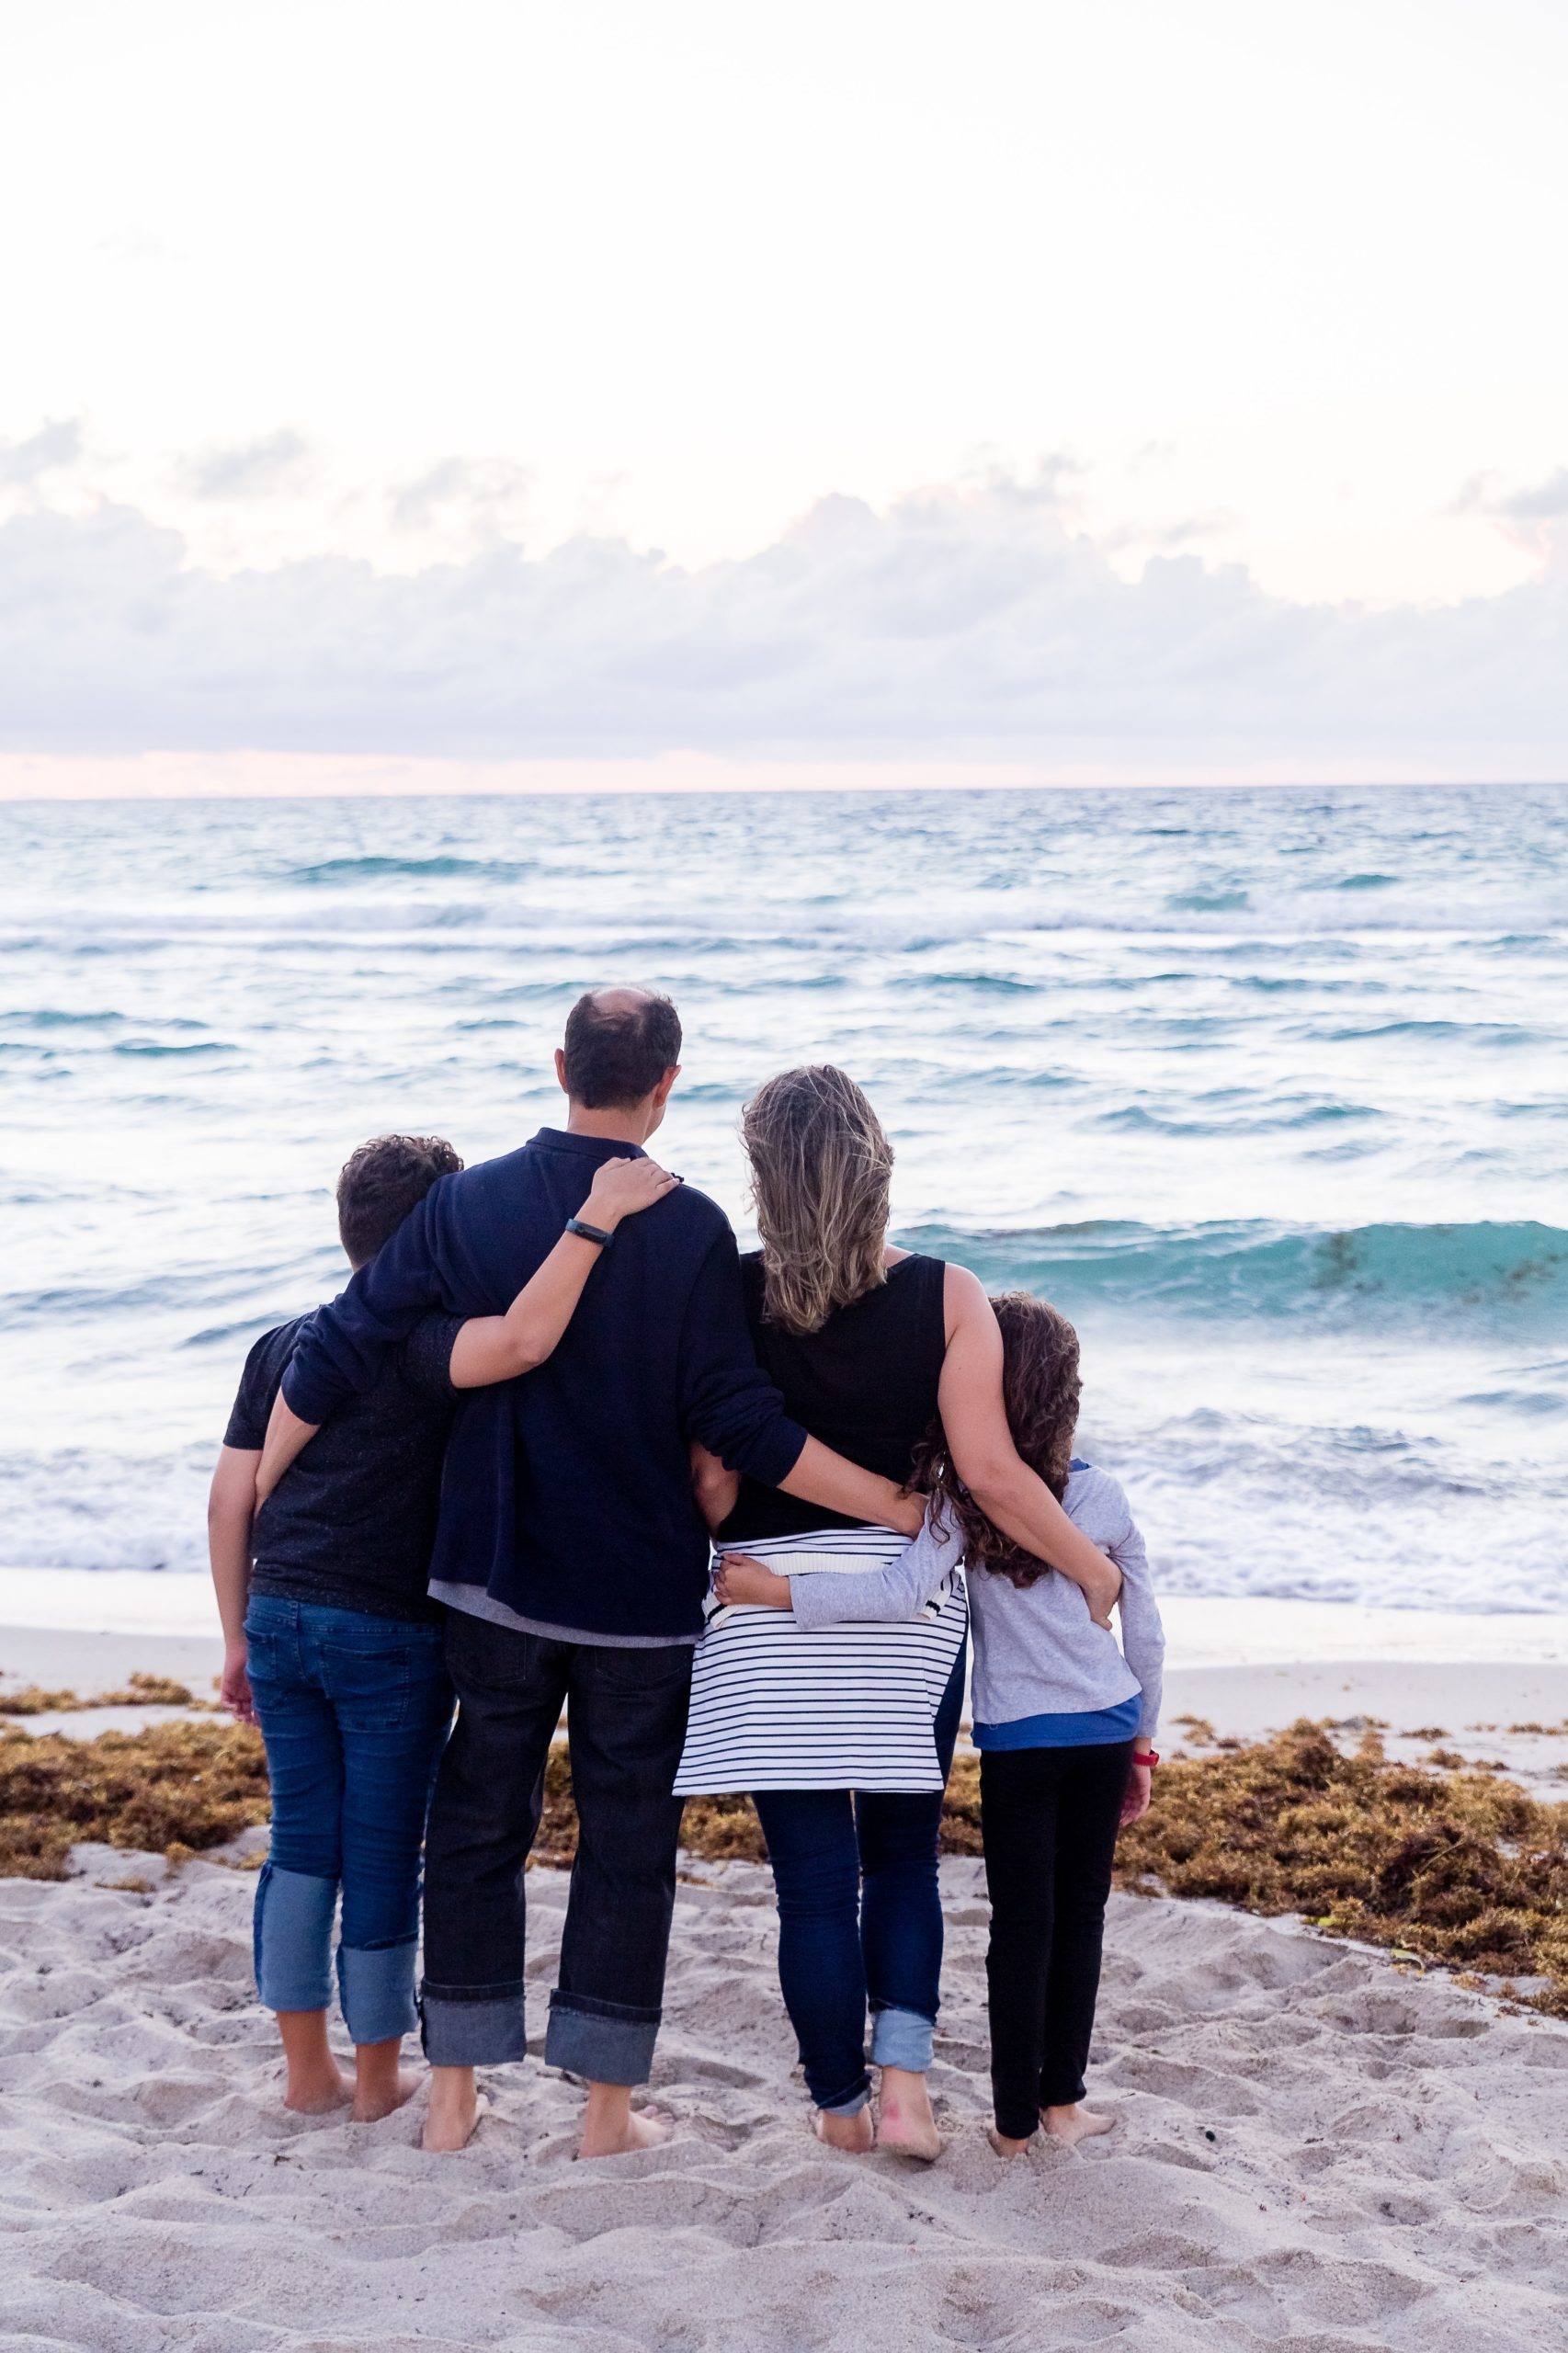 Two parents, their son and daughter on standing on a beach overlooking the ocean, representing the importance of recognizing early warning signs of eating disorders